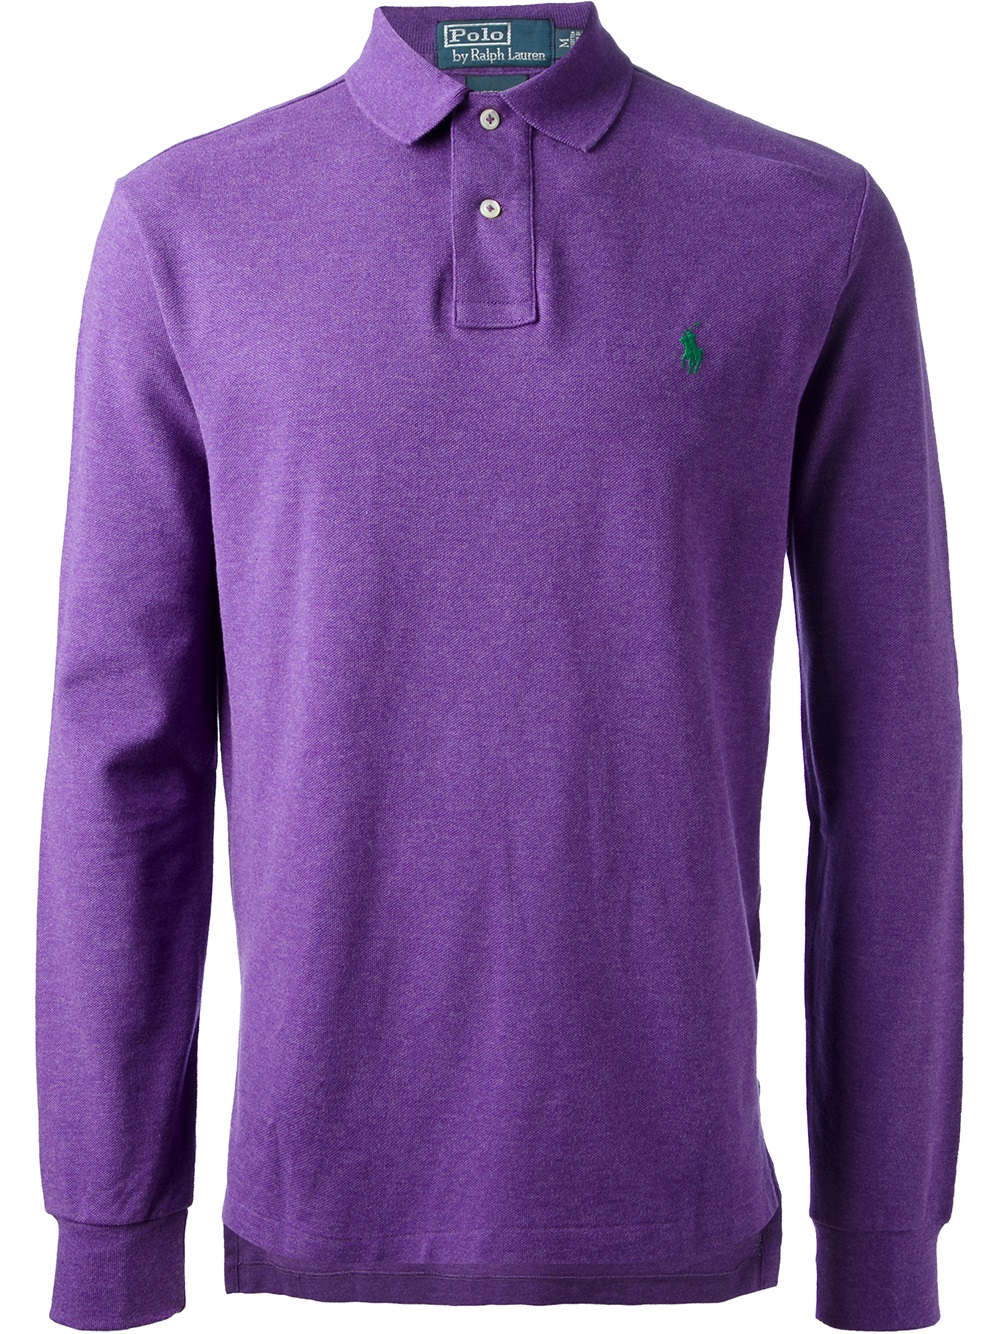 Lyst Polo Ralph Lauren Long Sleeve Polo Shirt In Purple For Men